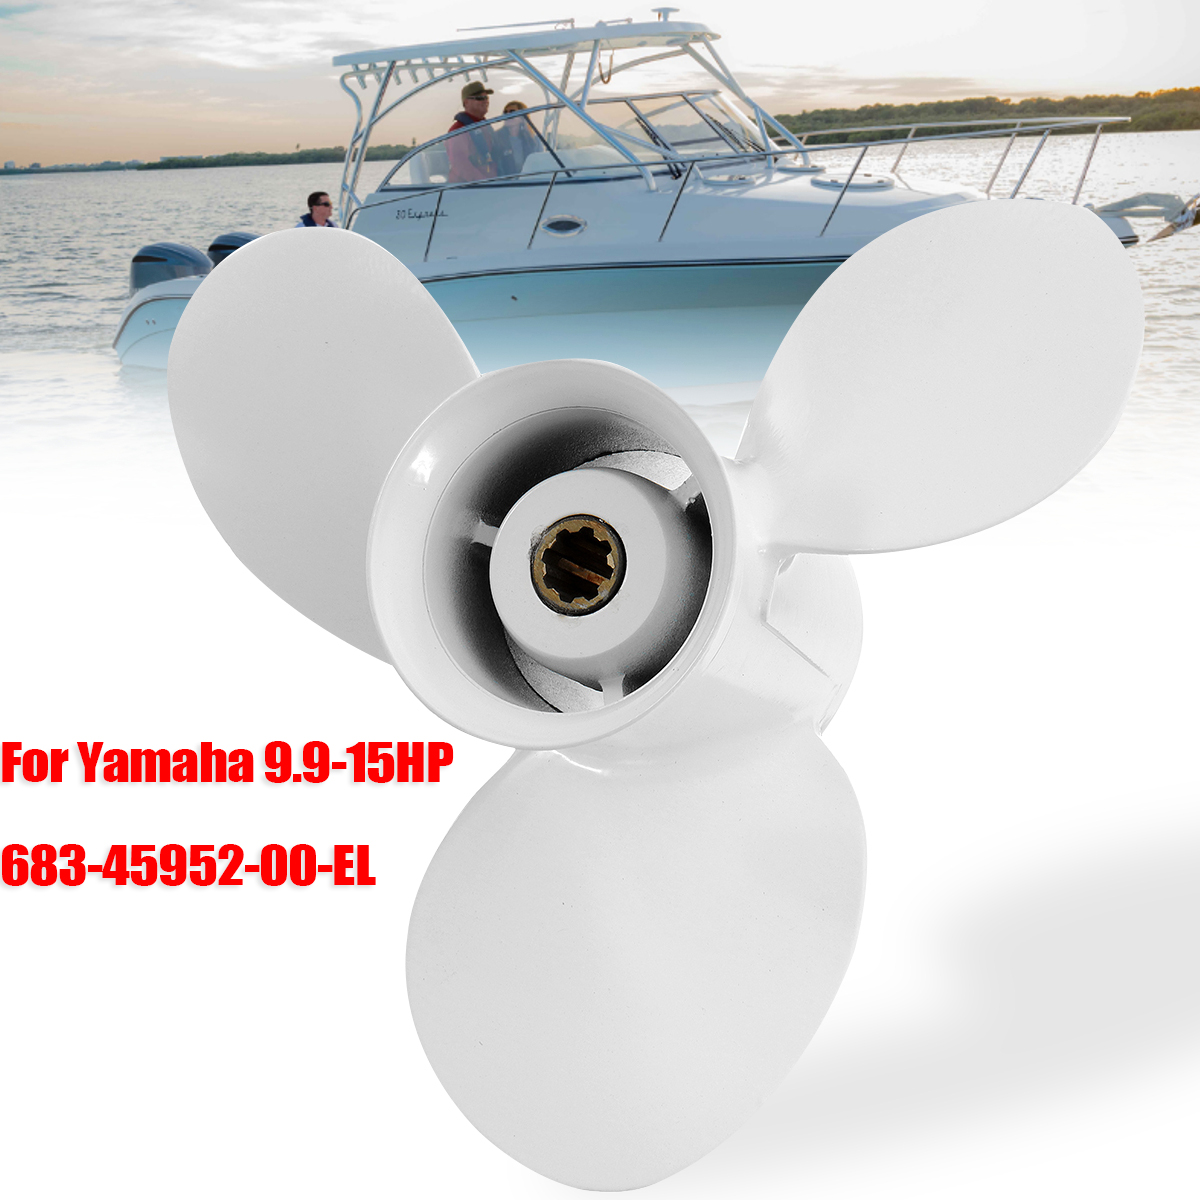 Back To Search Resultsautomobiles & Motorcycles Atv,rv,boat & Other Vehicle United 683-45952-00-el 9 1/4 X 9 3/4 Aluminum Alloy Boat Outboard Propeller For Yamaha 9.9-15hp R Rotation 3 Blades 8 Spline Tooths